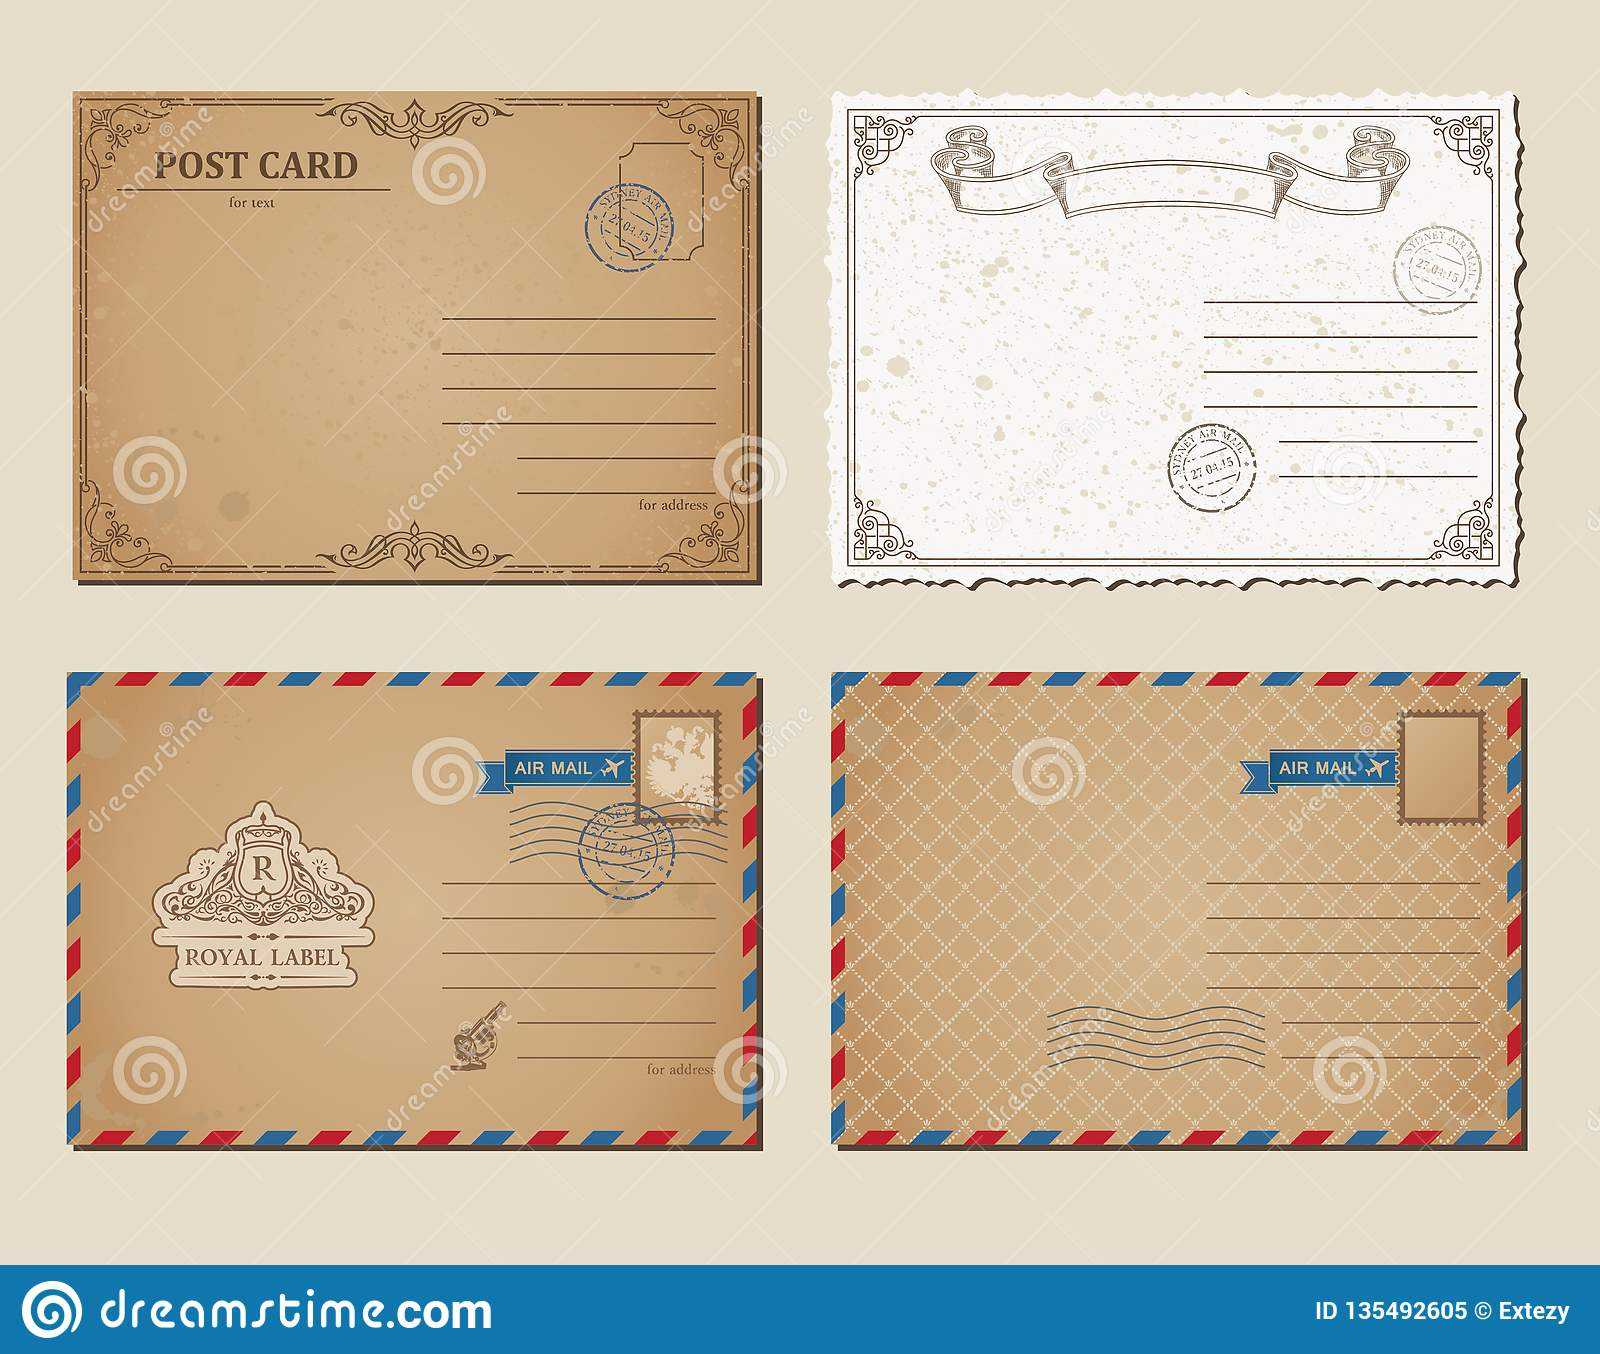 Vintage Postcards, Postage Stamps, Vector Illustration Post Throughout Post Cards Template